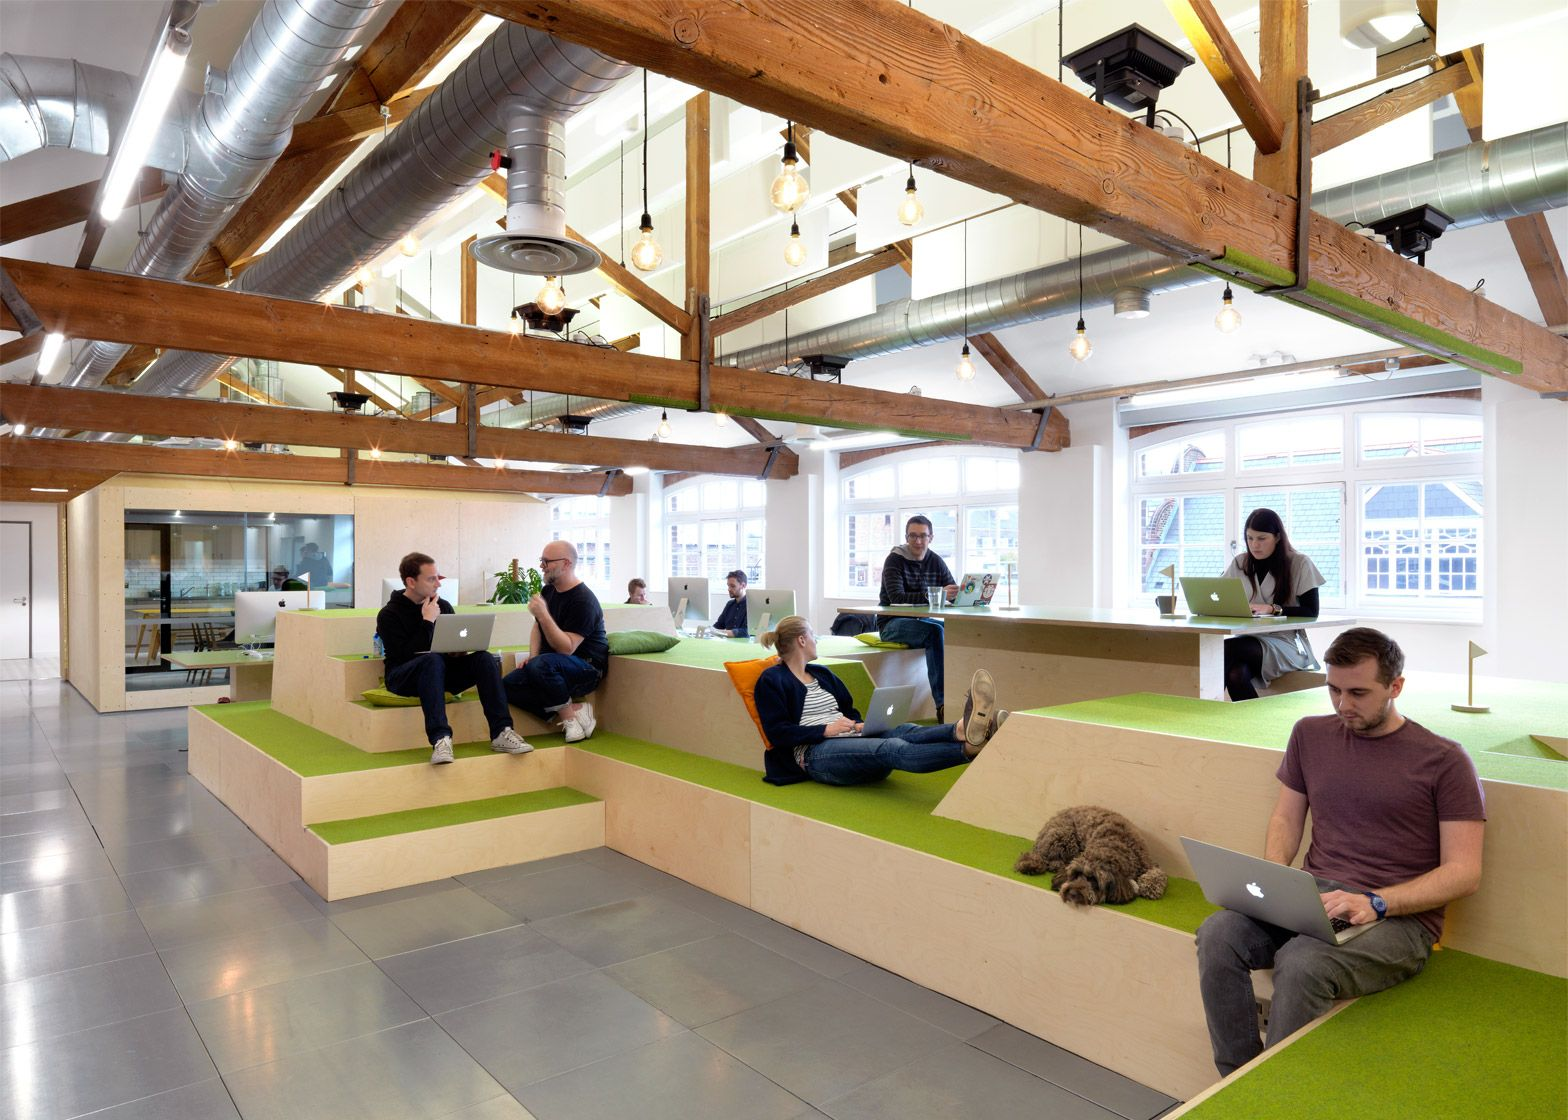 Airbnb 39 s new offices in london 39 s clerkenwell illustrate a for Office space design